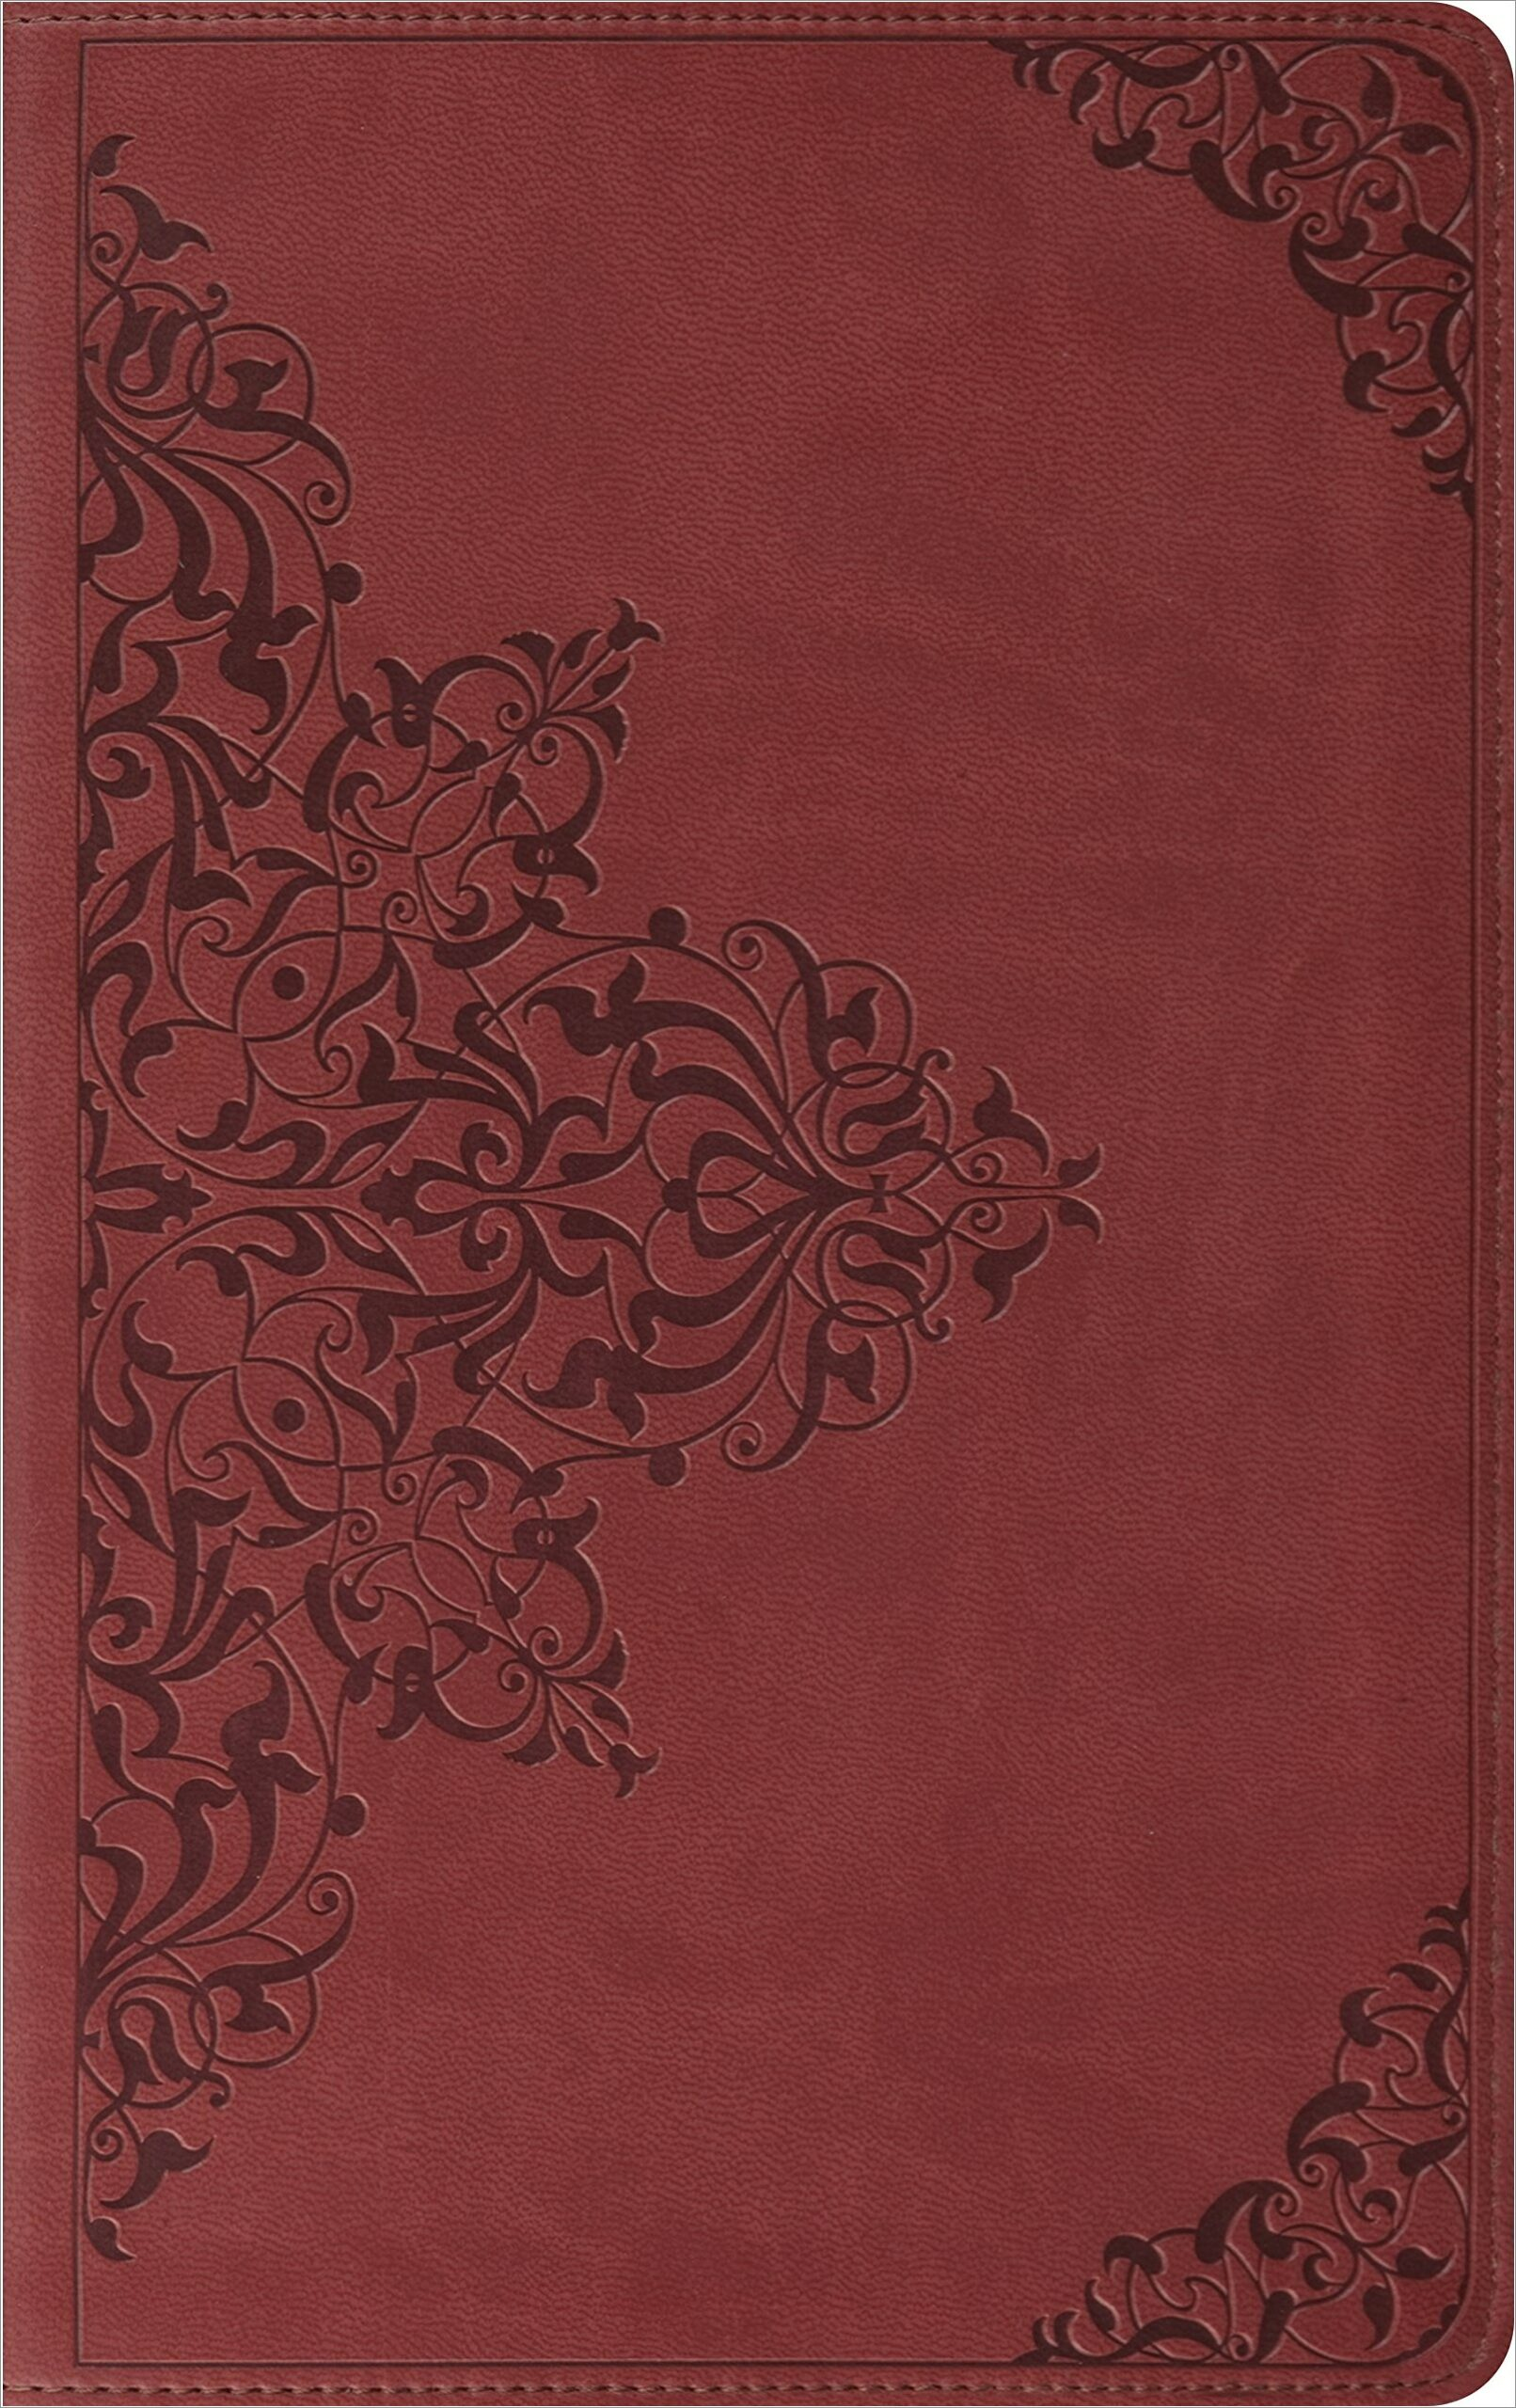 Esv Red Letter Bible